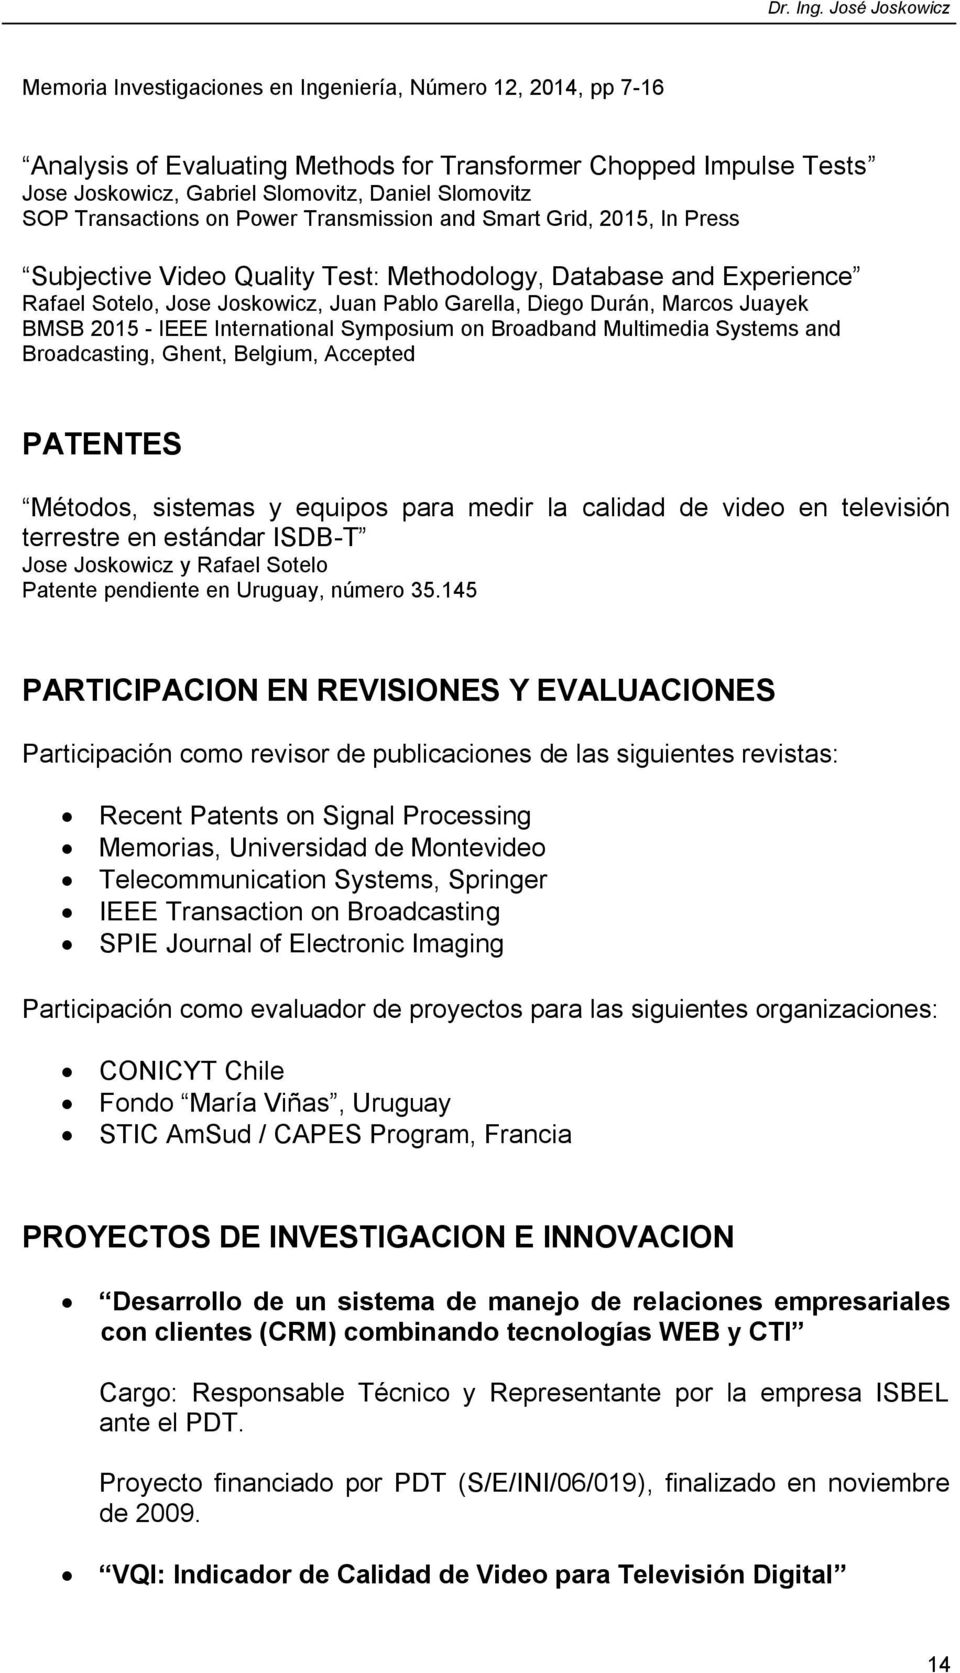 Marcos Juayek BMSB 2015 - IEEE International Symposium on Broadband Multimedia Systems and Broadcasting, Ghent, Belgium, Accepted PATENTES Métodos, sistemas y equipos para medir la calidad de video